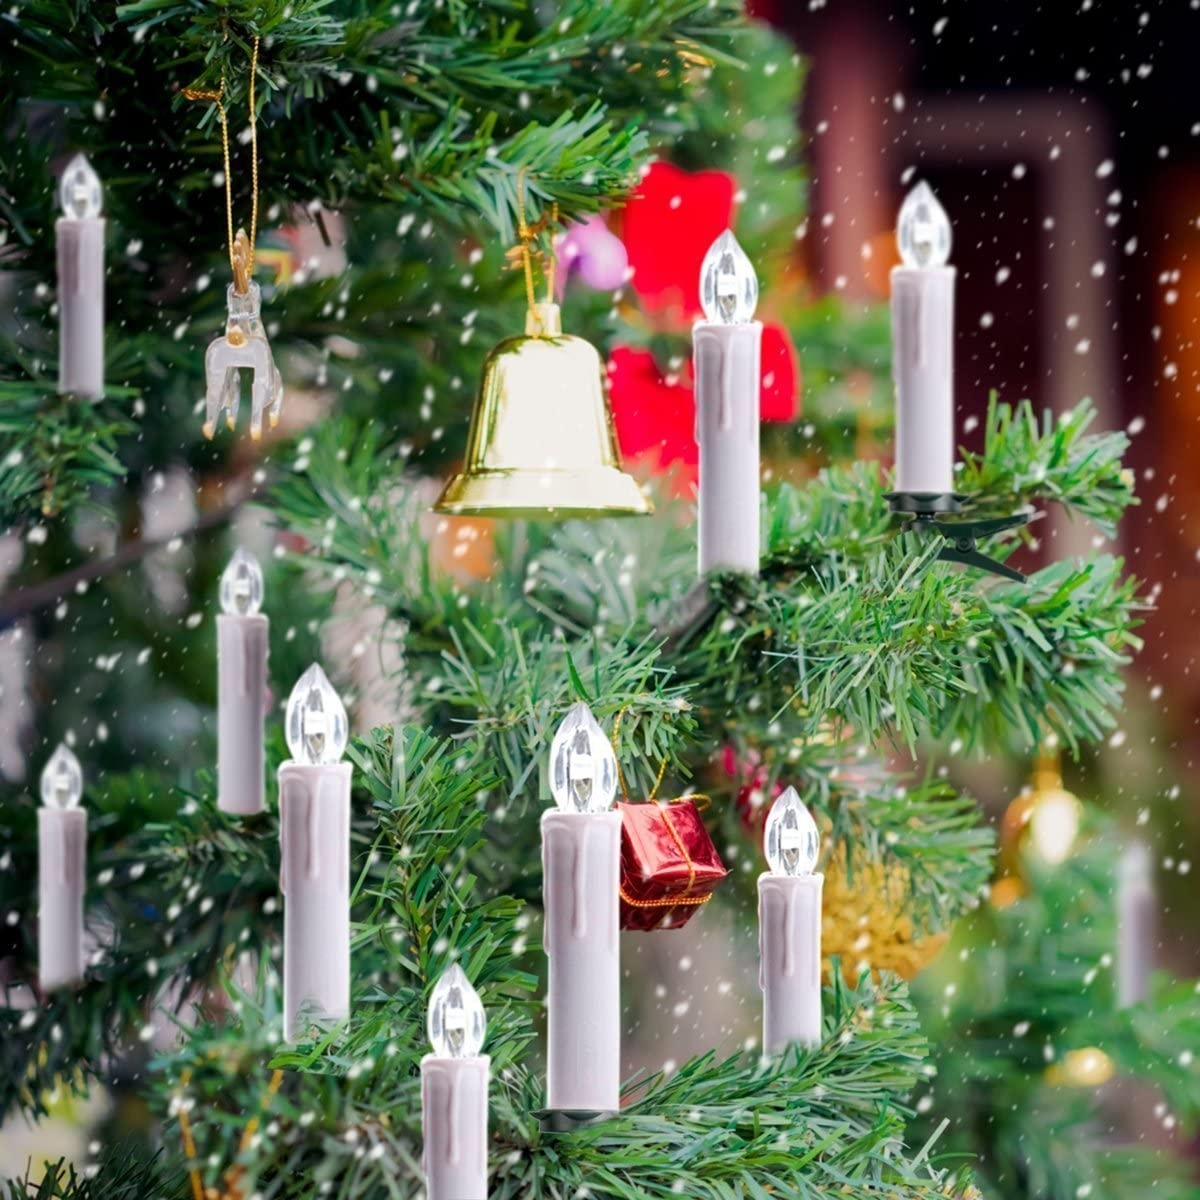 Tree Candles 10pcs warm white LED Wirelessly to attach with clip including remote control for any Party